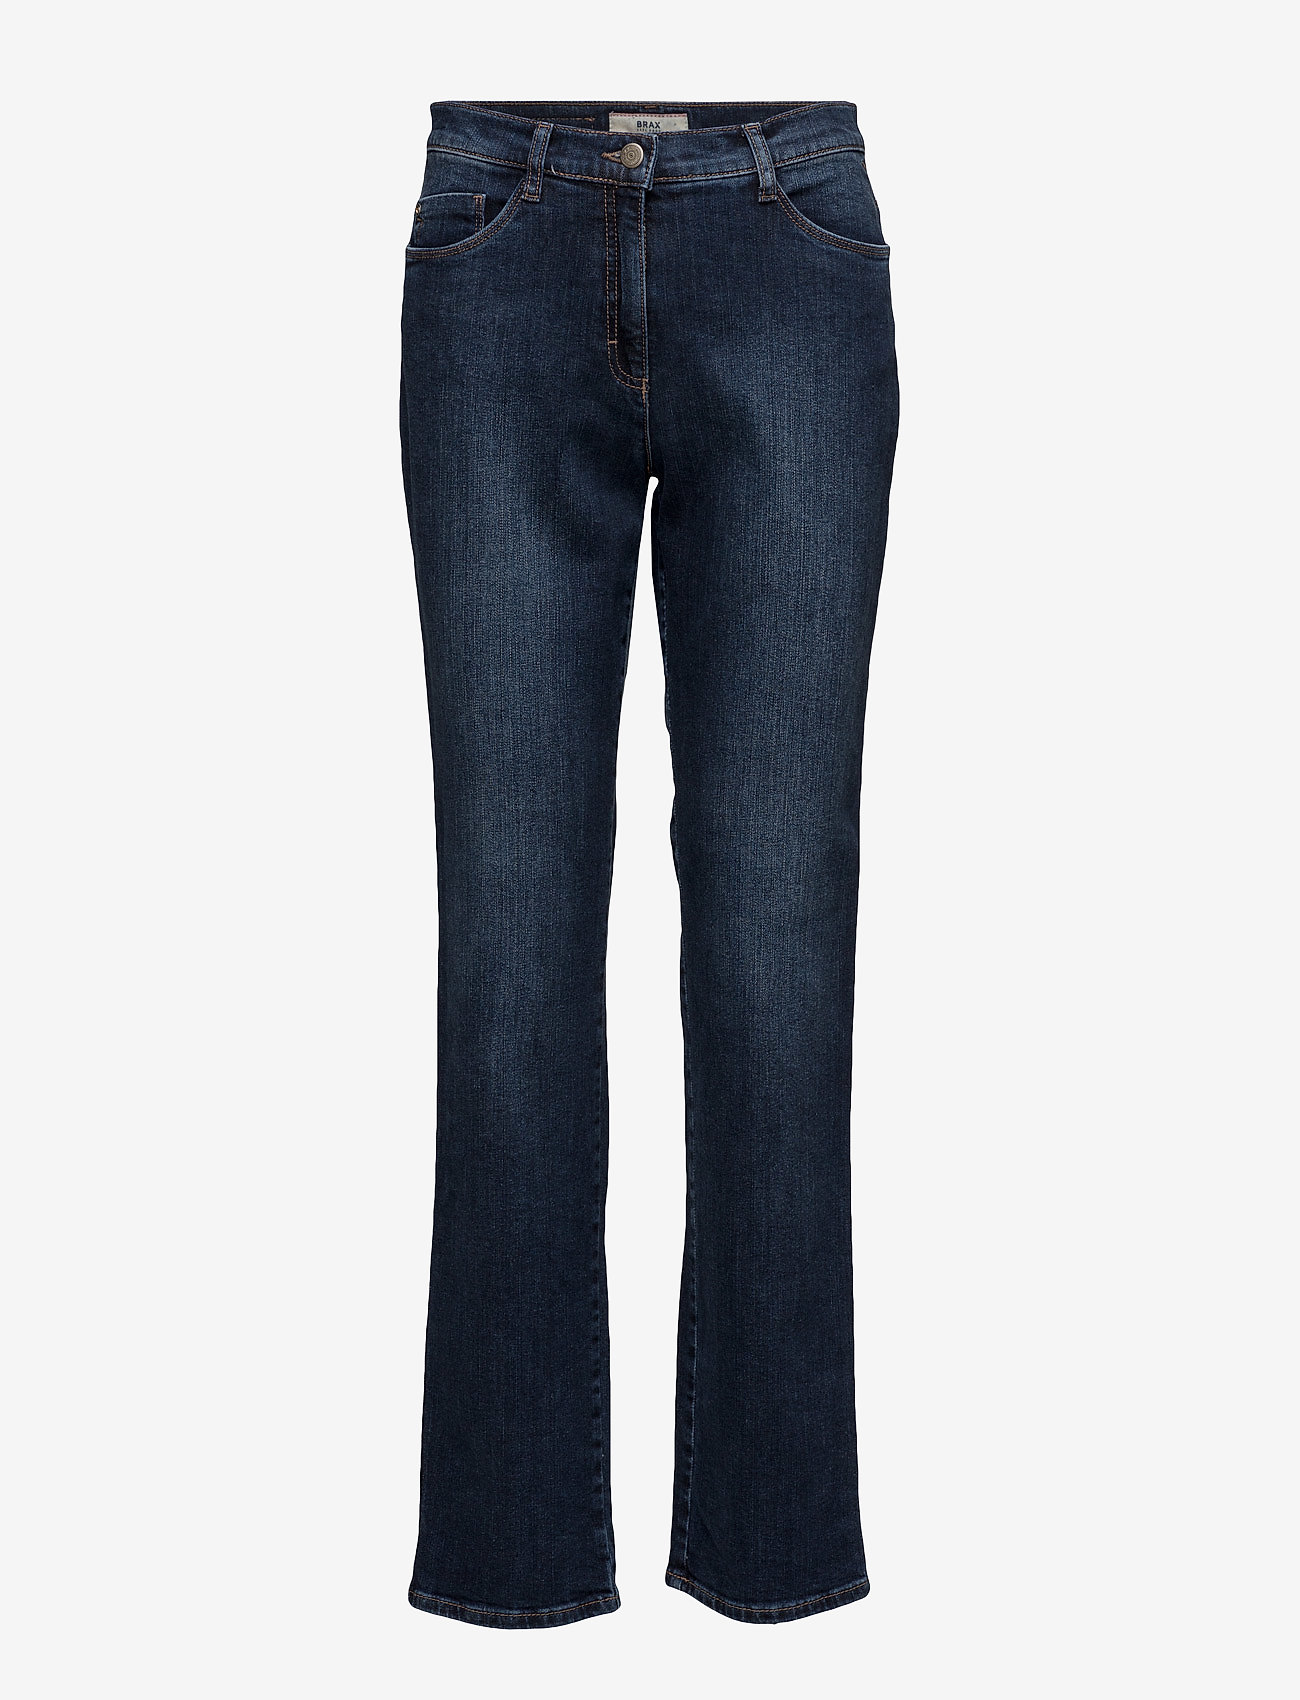 BRAX - CAROLA - straight jeans - used regular blue - 0